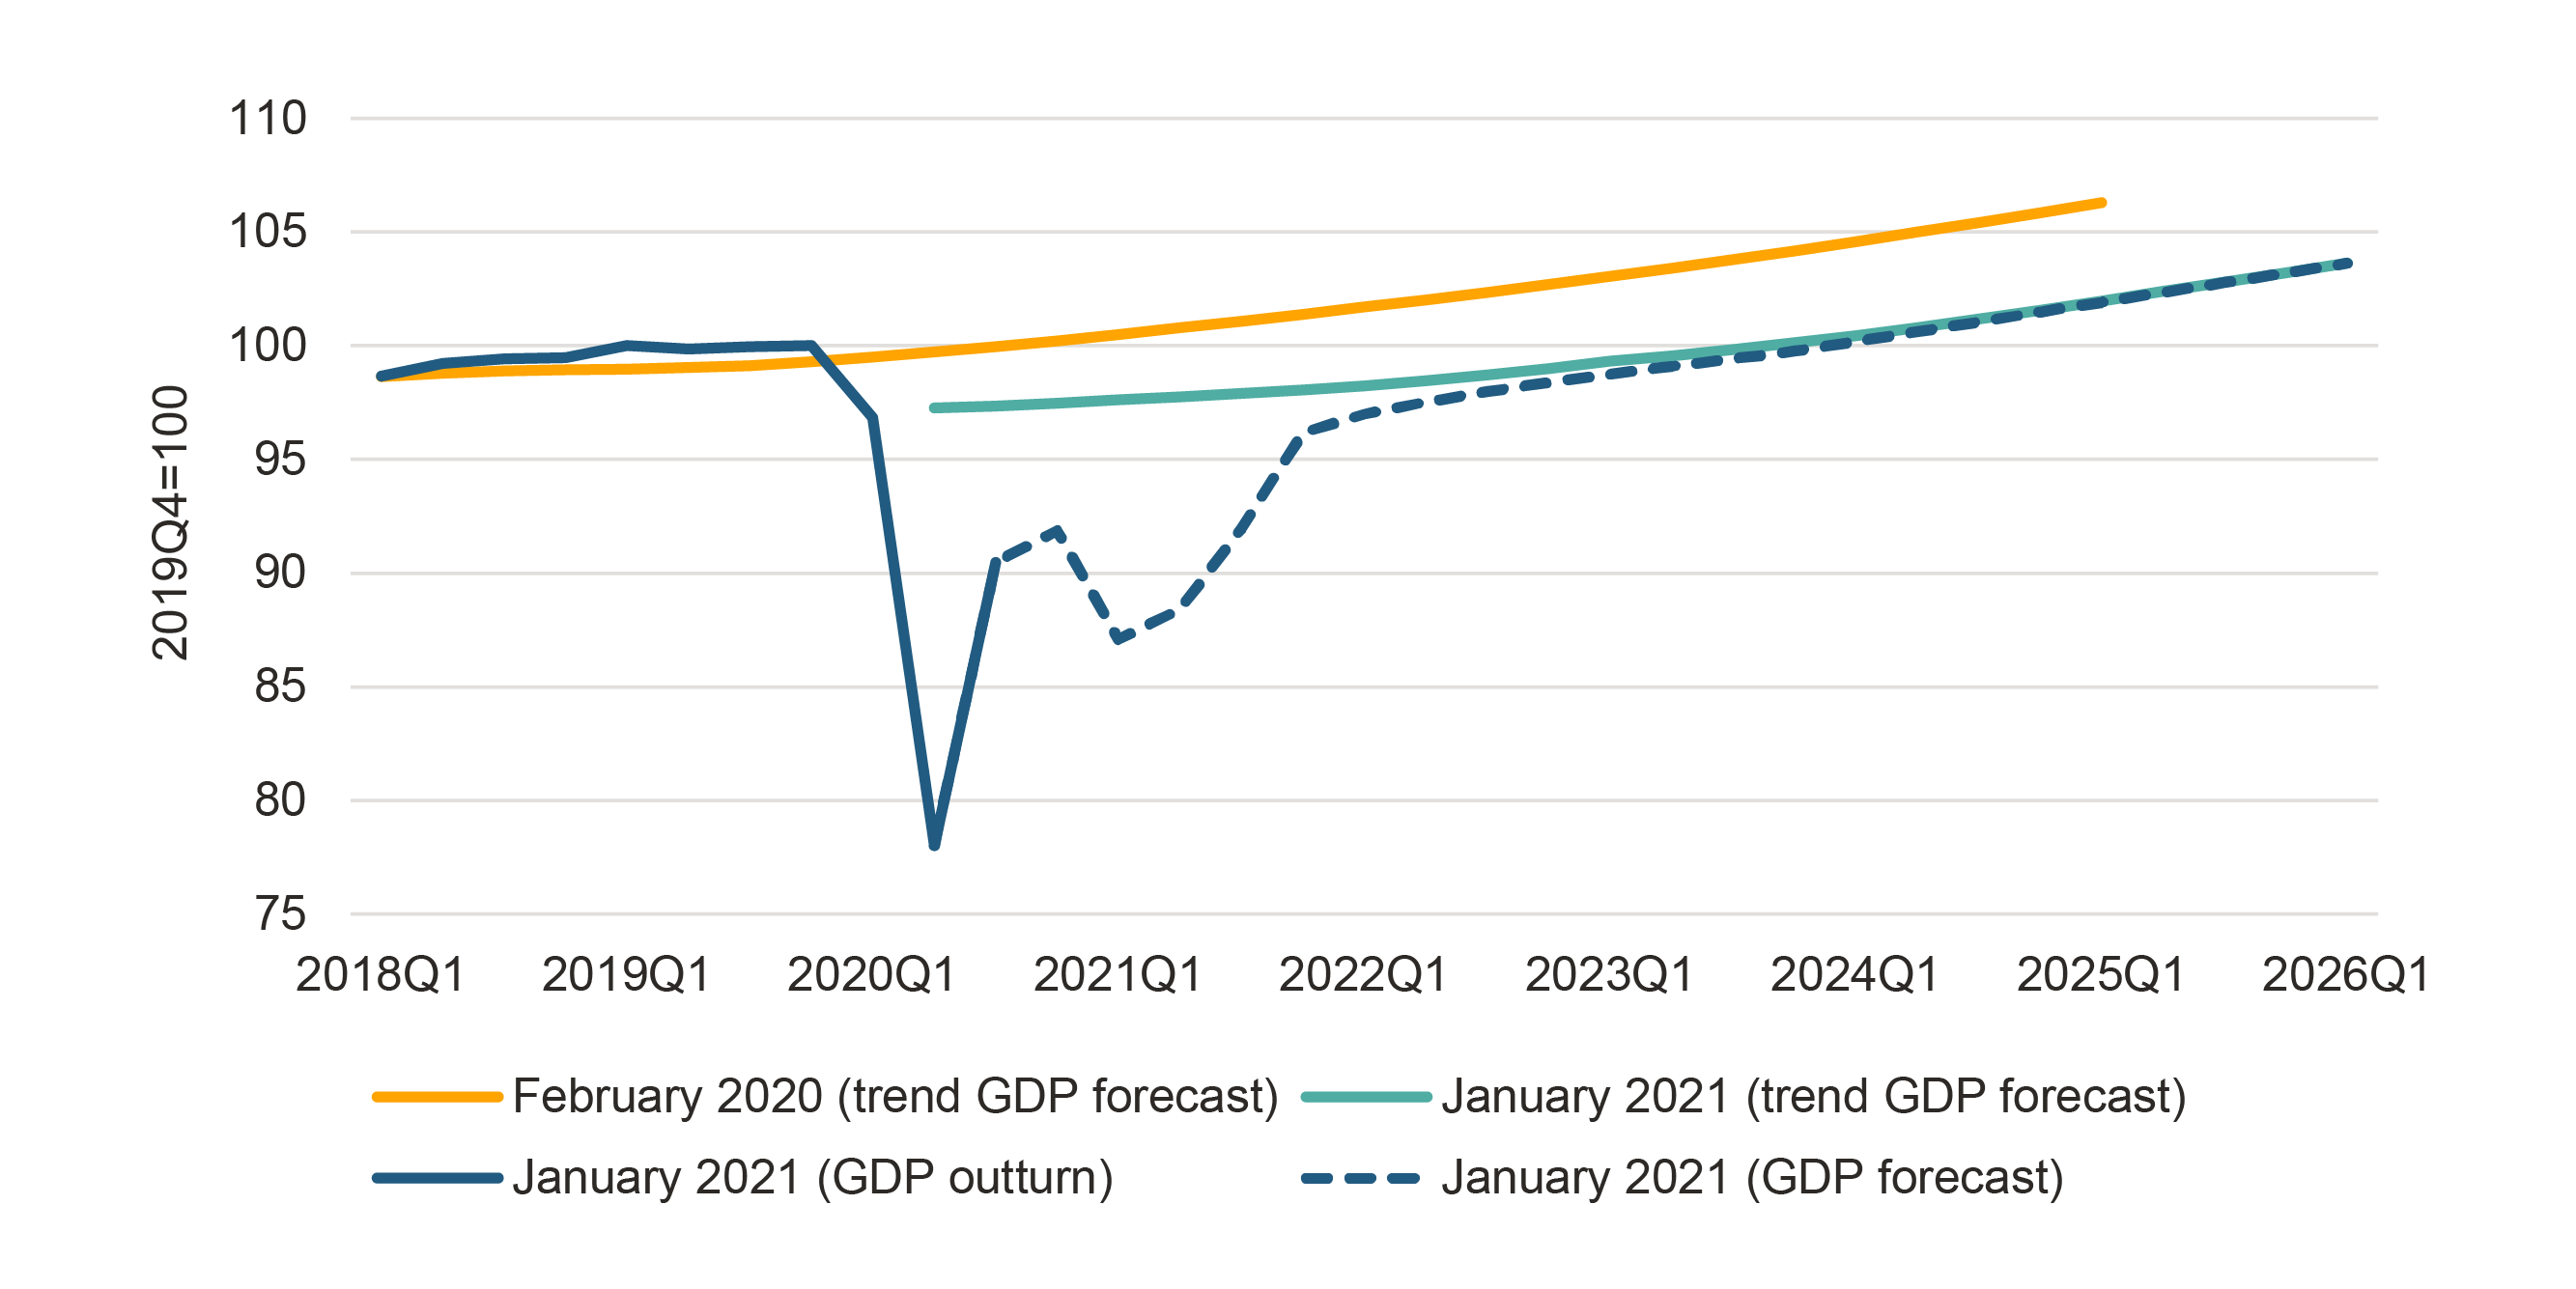 Figure one shows that Scottish GDP fell by almost a quarter during the lockdown in early 202 when compared with the GDP trends in February 2020.